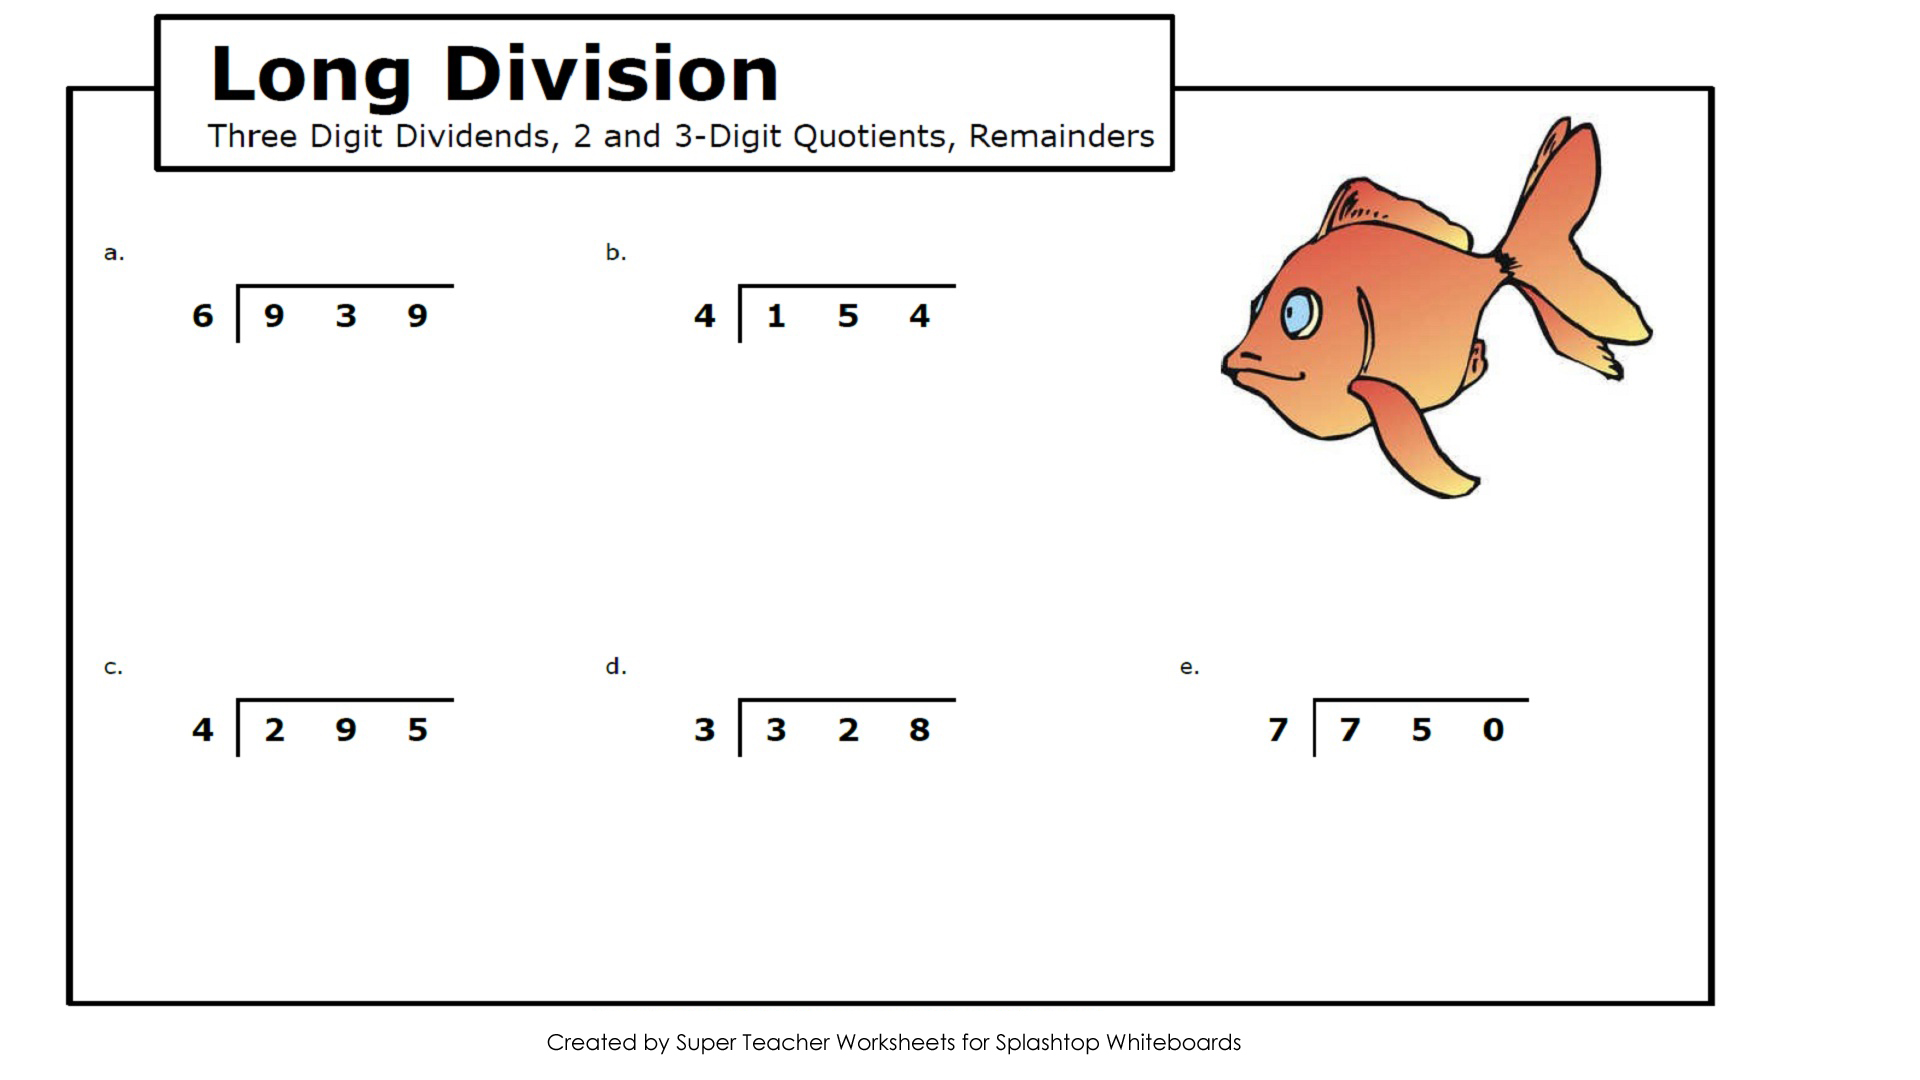 Worksheets Super Teacher Worksheets Division splashtop whiteboard background graphics long division 3 digit dividends